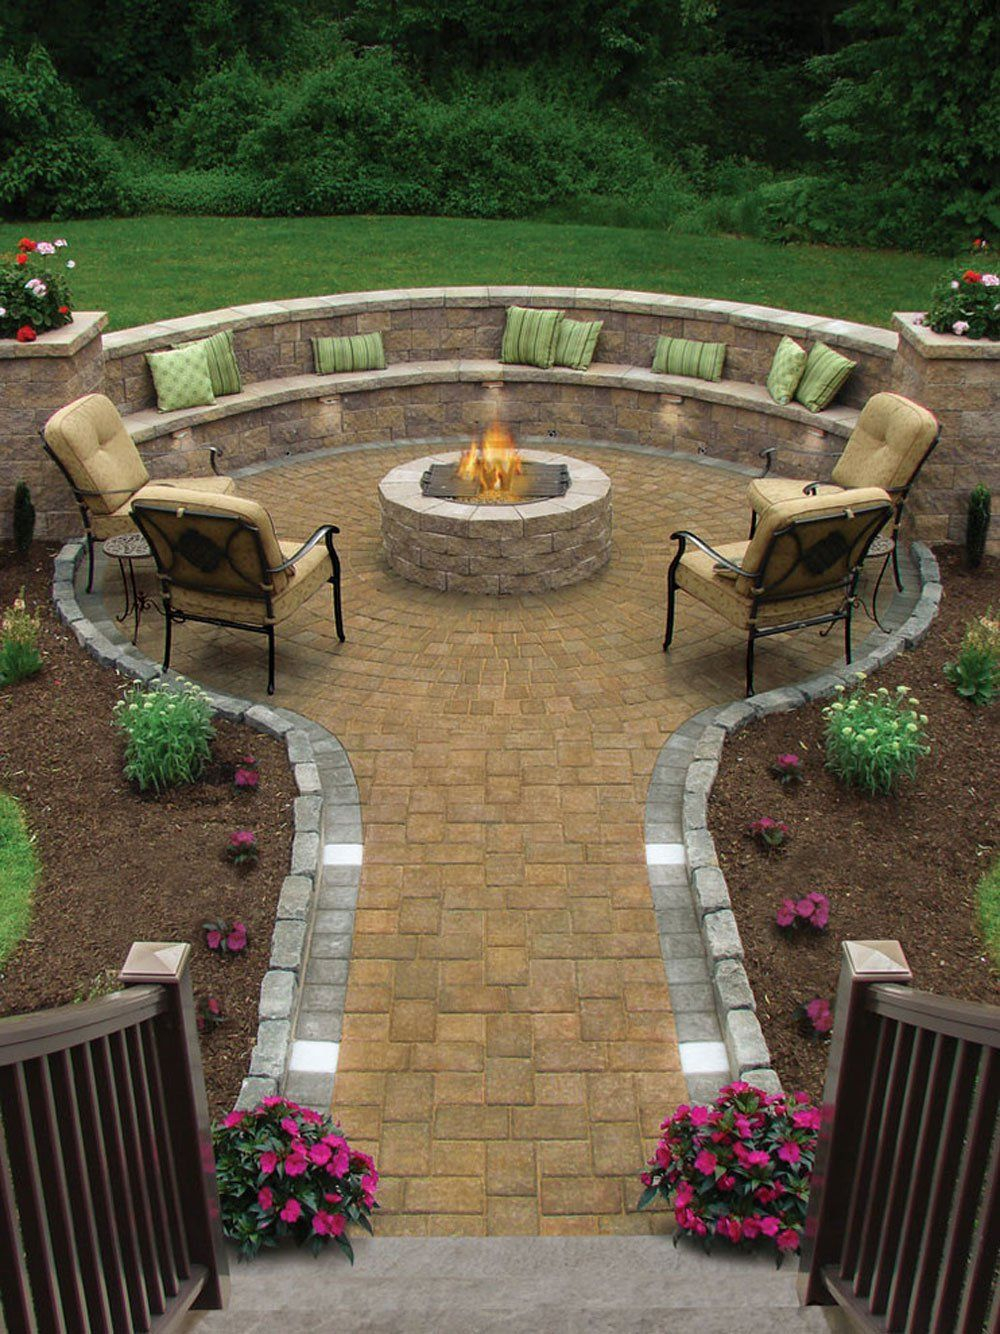 17 Of The Most Amazing Seating Area Around The Fire Pit Ever throughout dimensions 1000 X 1334